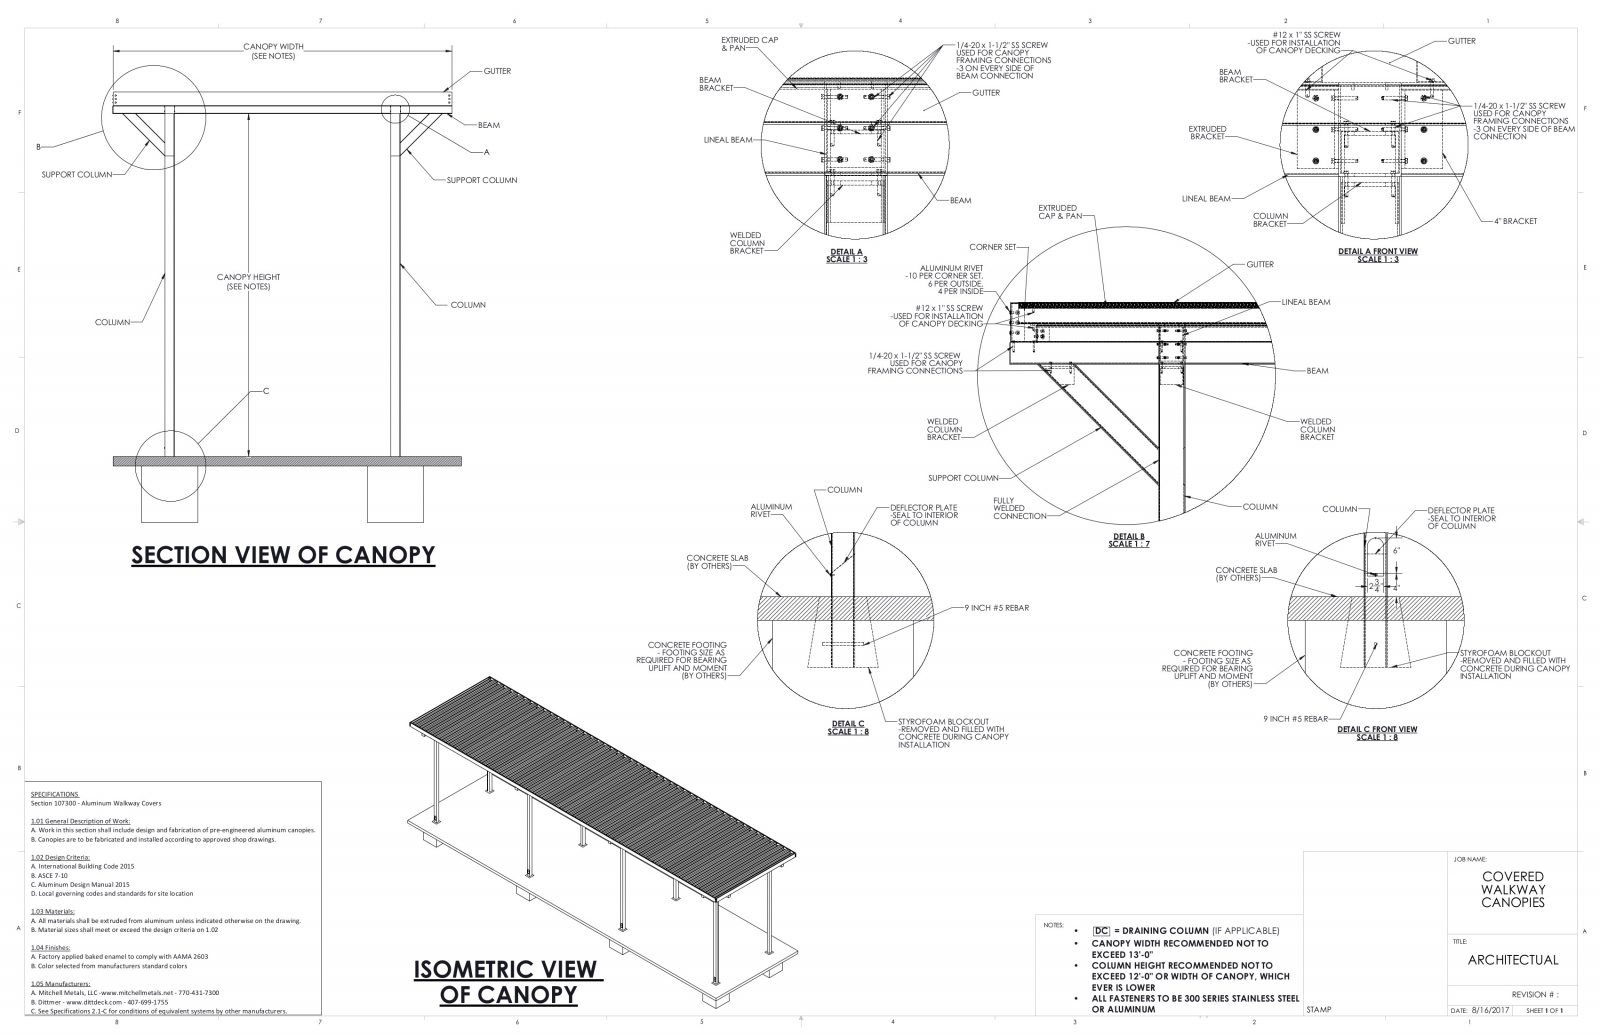 Architectural canopy details and specifications for architects and general contractors